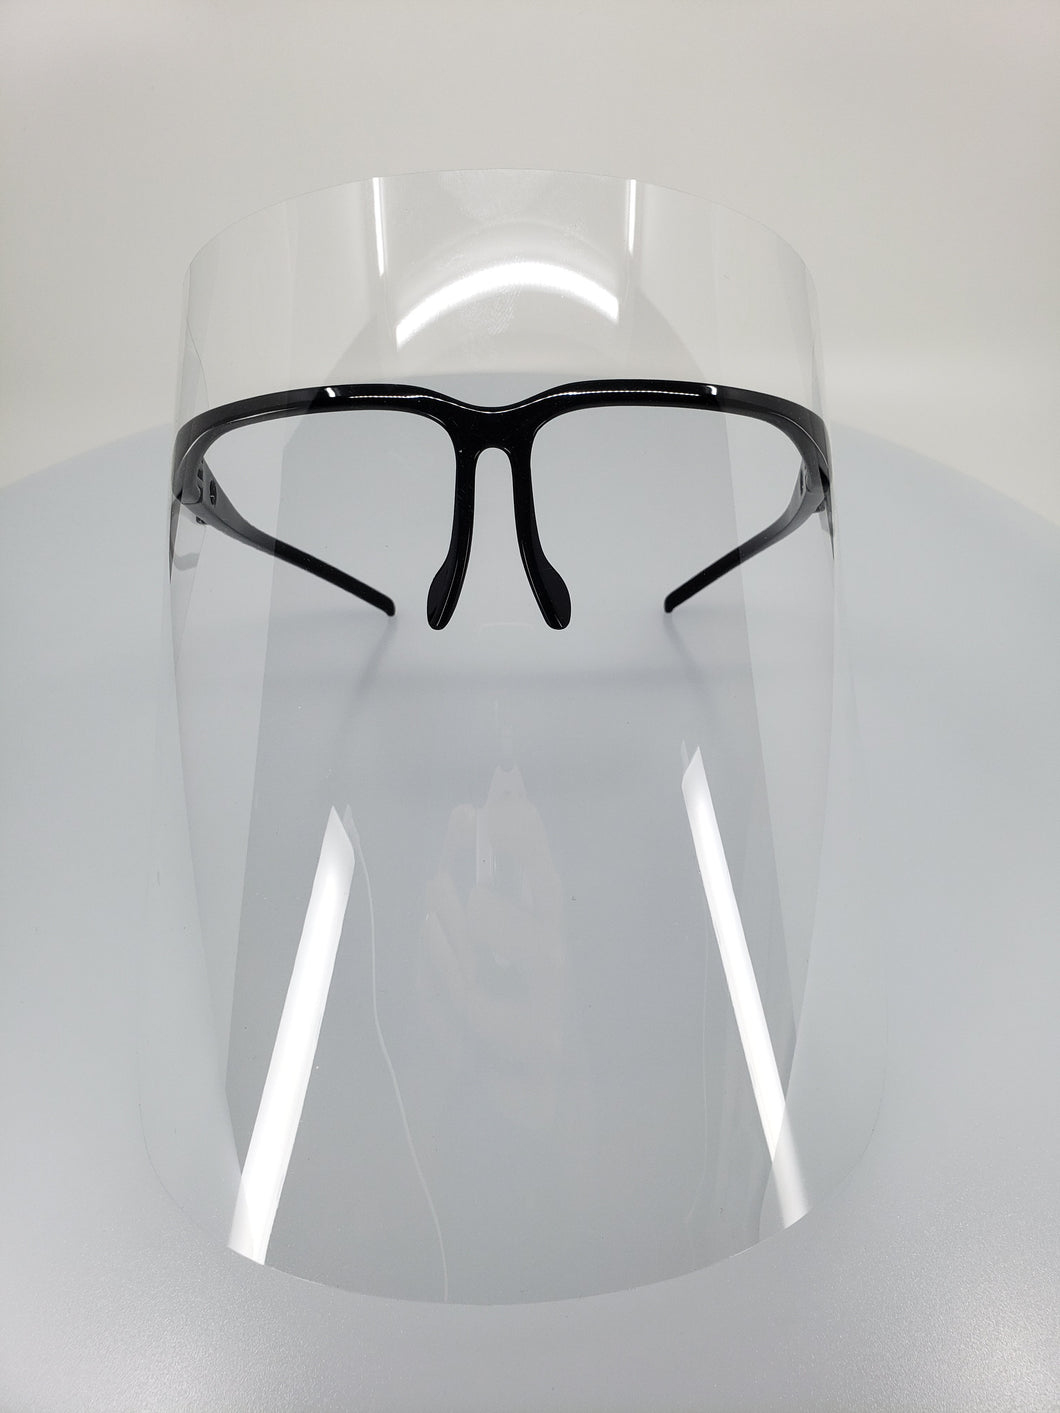 Eyeglass Style Face Shields (3 Pack)